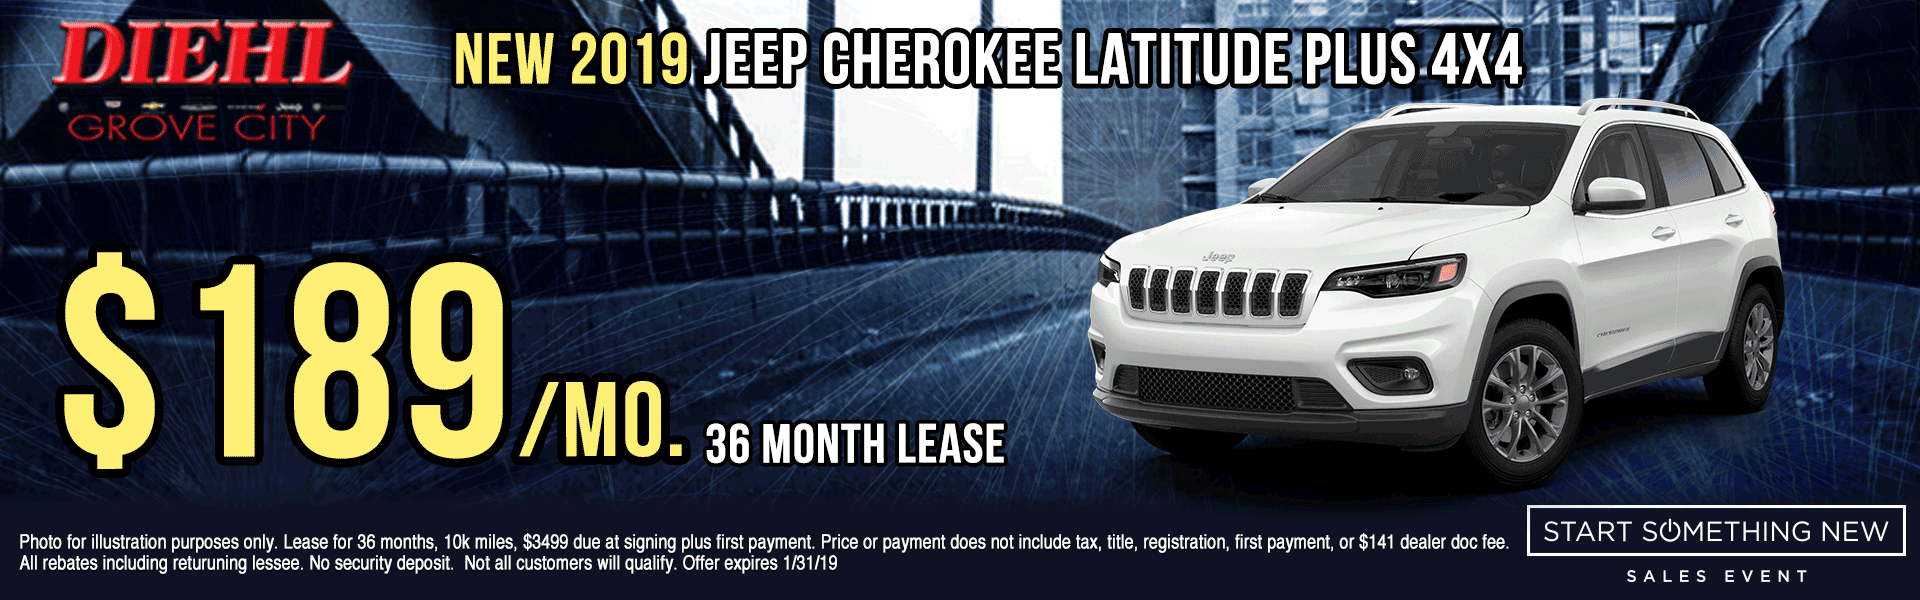 J1349-2019-JEEP-CHEROKEE-LATITUDE-PLUS-4X4 Start Something New Sales Event Chrysler Specials Dodge Specials Jeep Specials RAM Specials grove city specials Diehl specials Diehl Automotive grove city lease specials